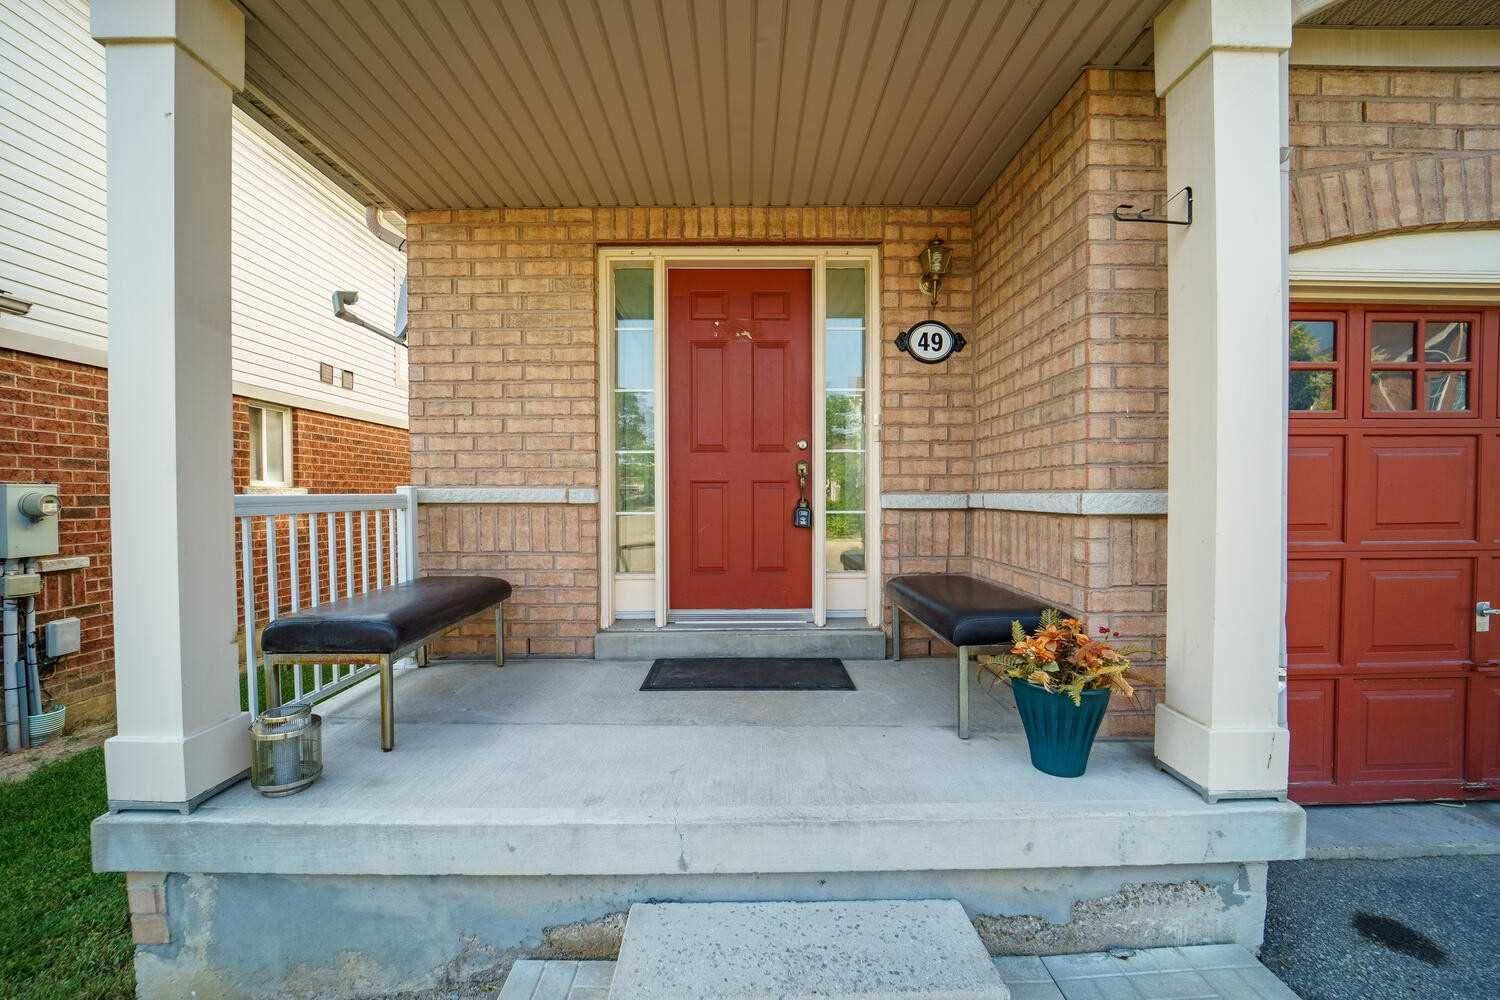 6035 Bidwell Tr, unit 49 for sale in Toronto - image #2